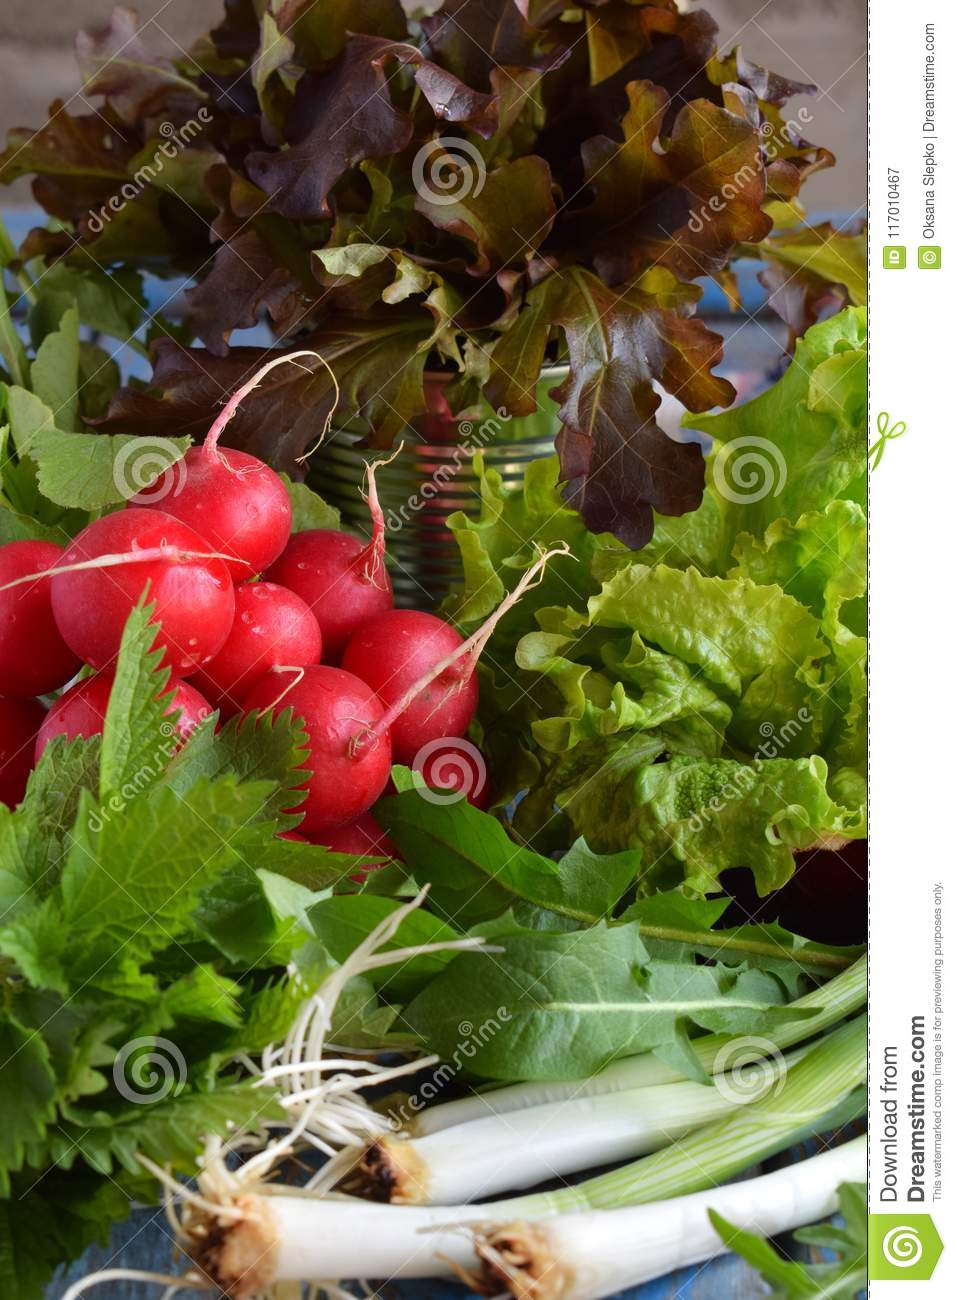 Fresh spring vegetables and edible wild herbs: radish, green and purple lettuce, onions, arugula, nettle, dandelion. Preparation f